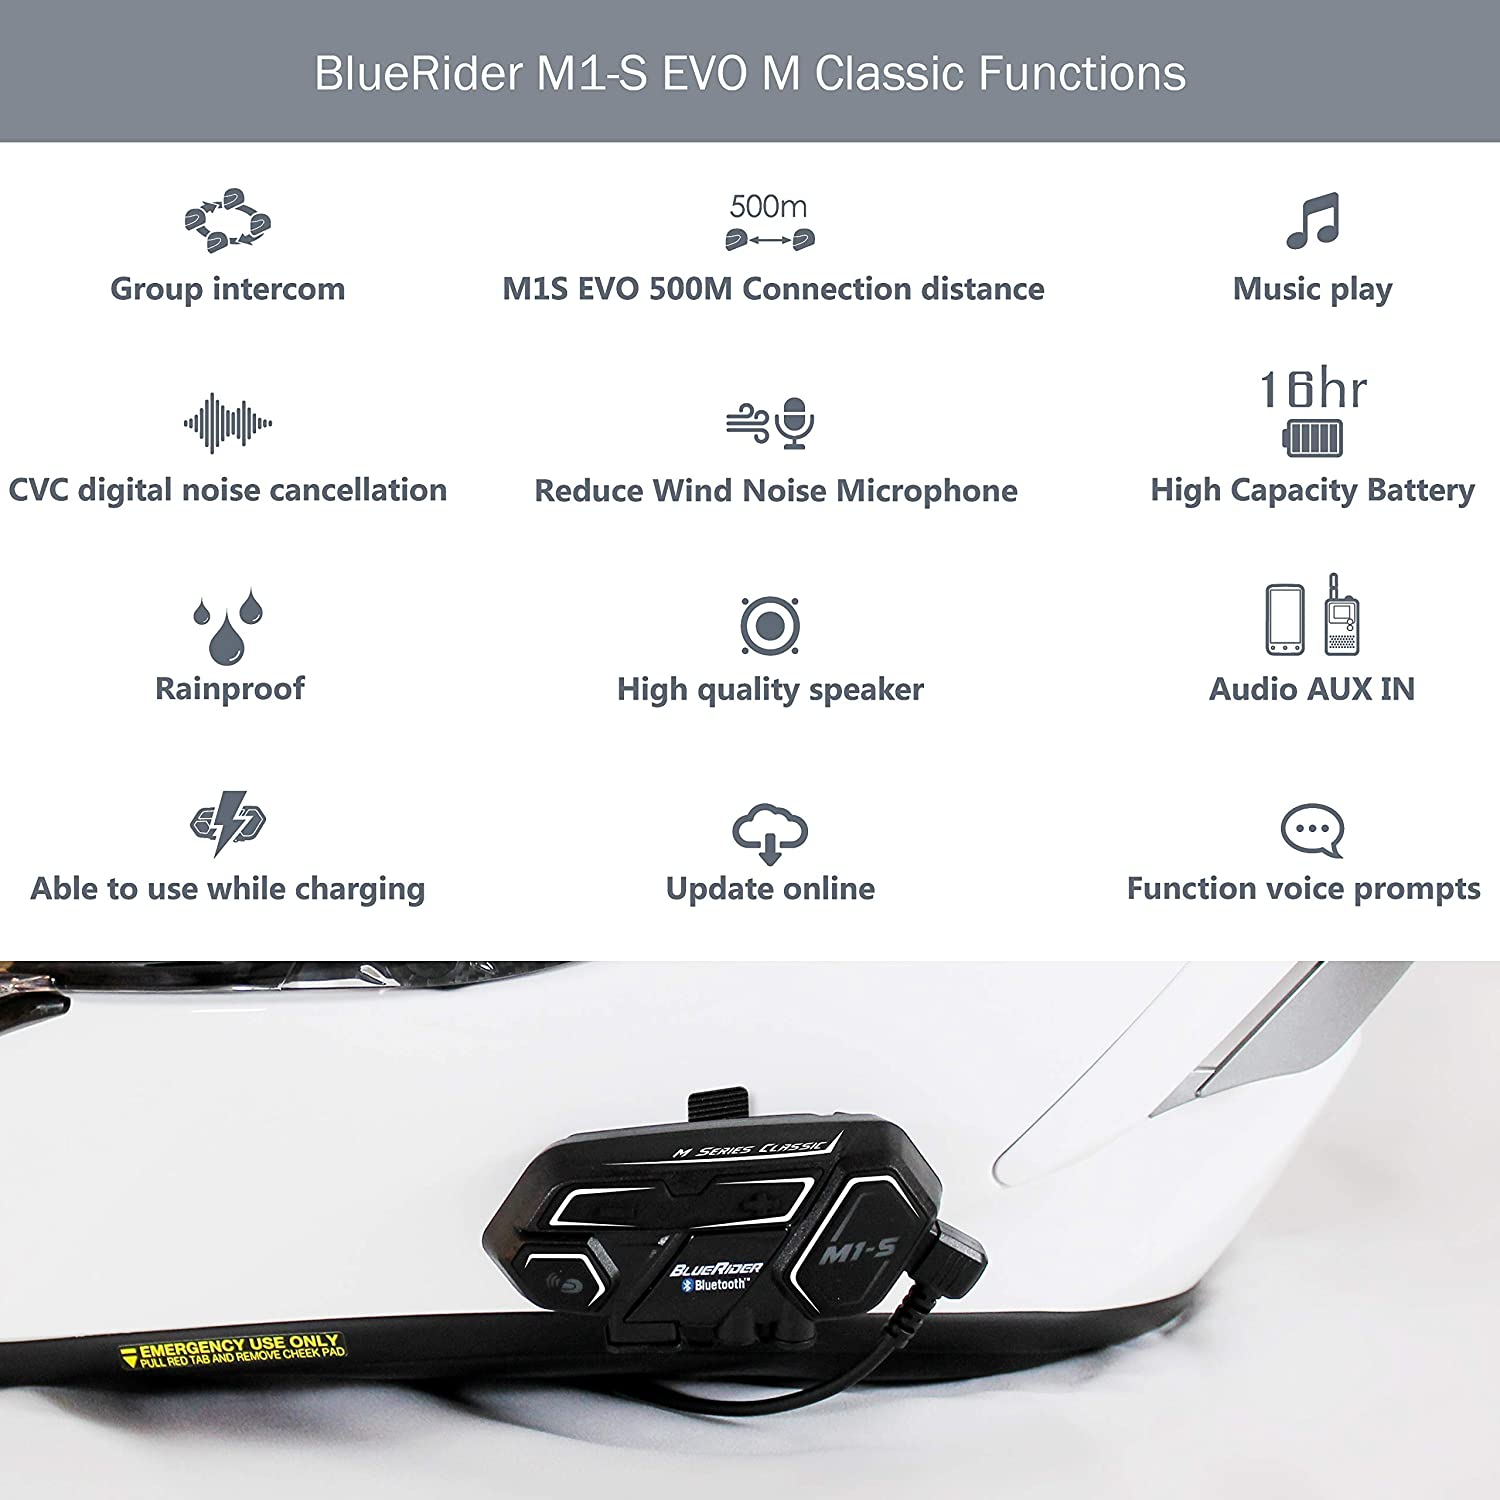 Waterproof Bluetooth Helmet Headset Kit with Music BlueRider M1-S EVO Bluetooth Motorcycle Headset Handsfree and Navigation 4-Way Wireless Intercom up to 2000m Calls